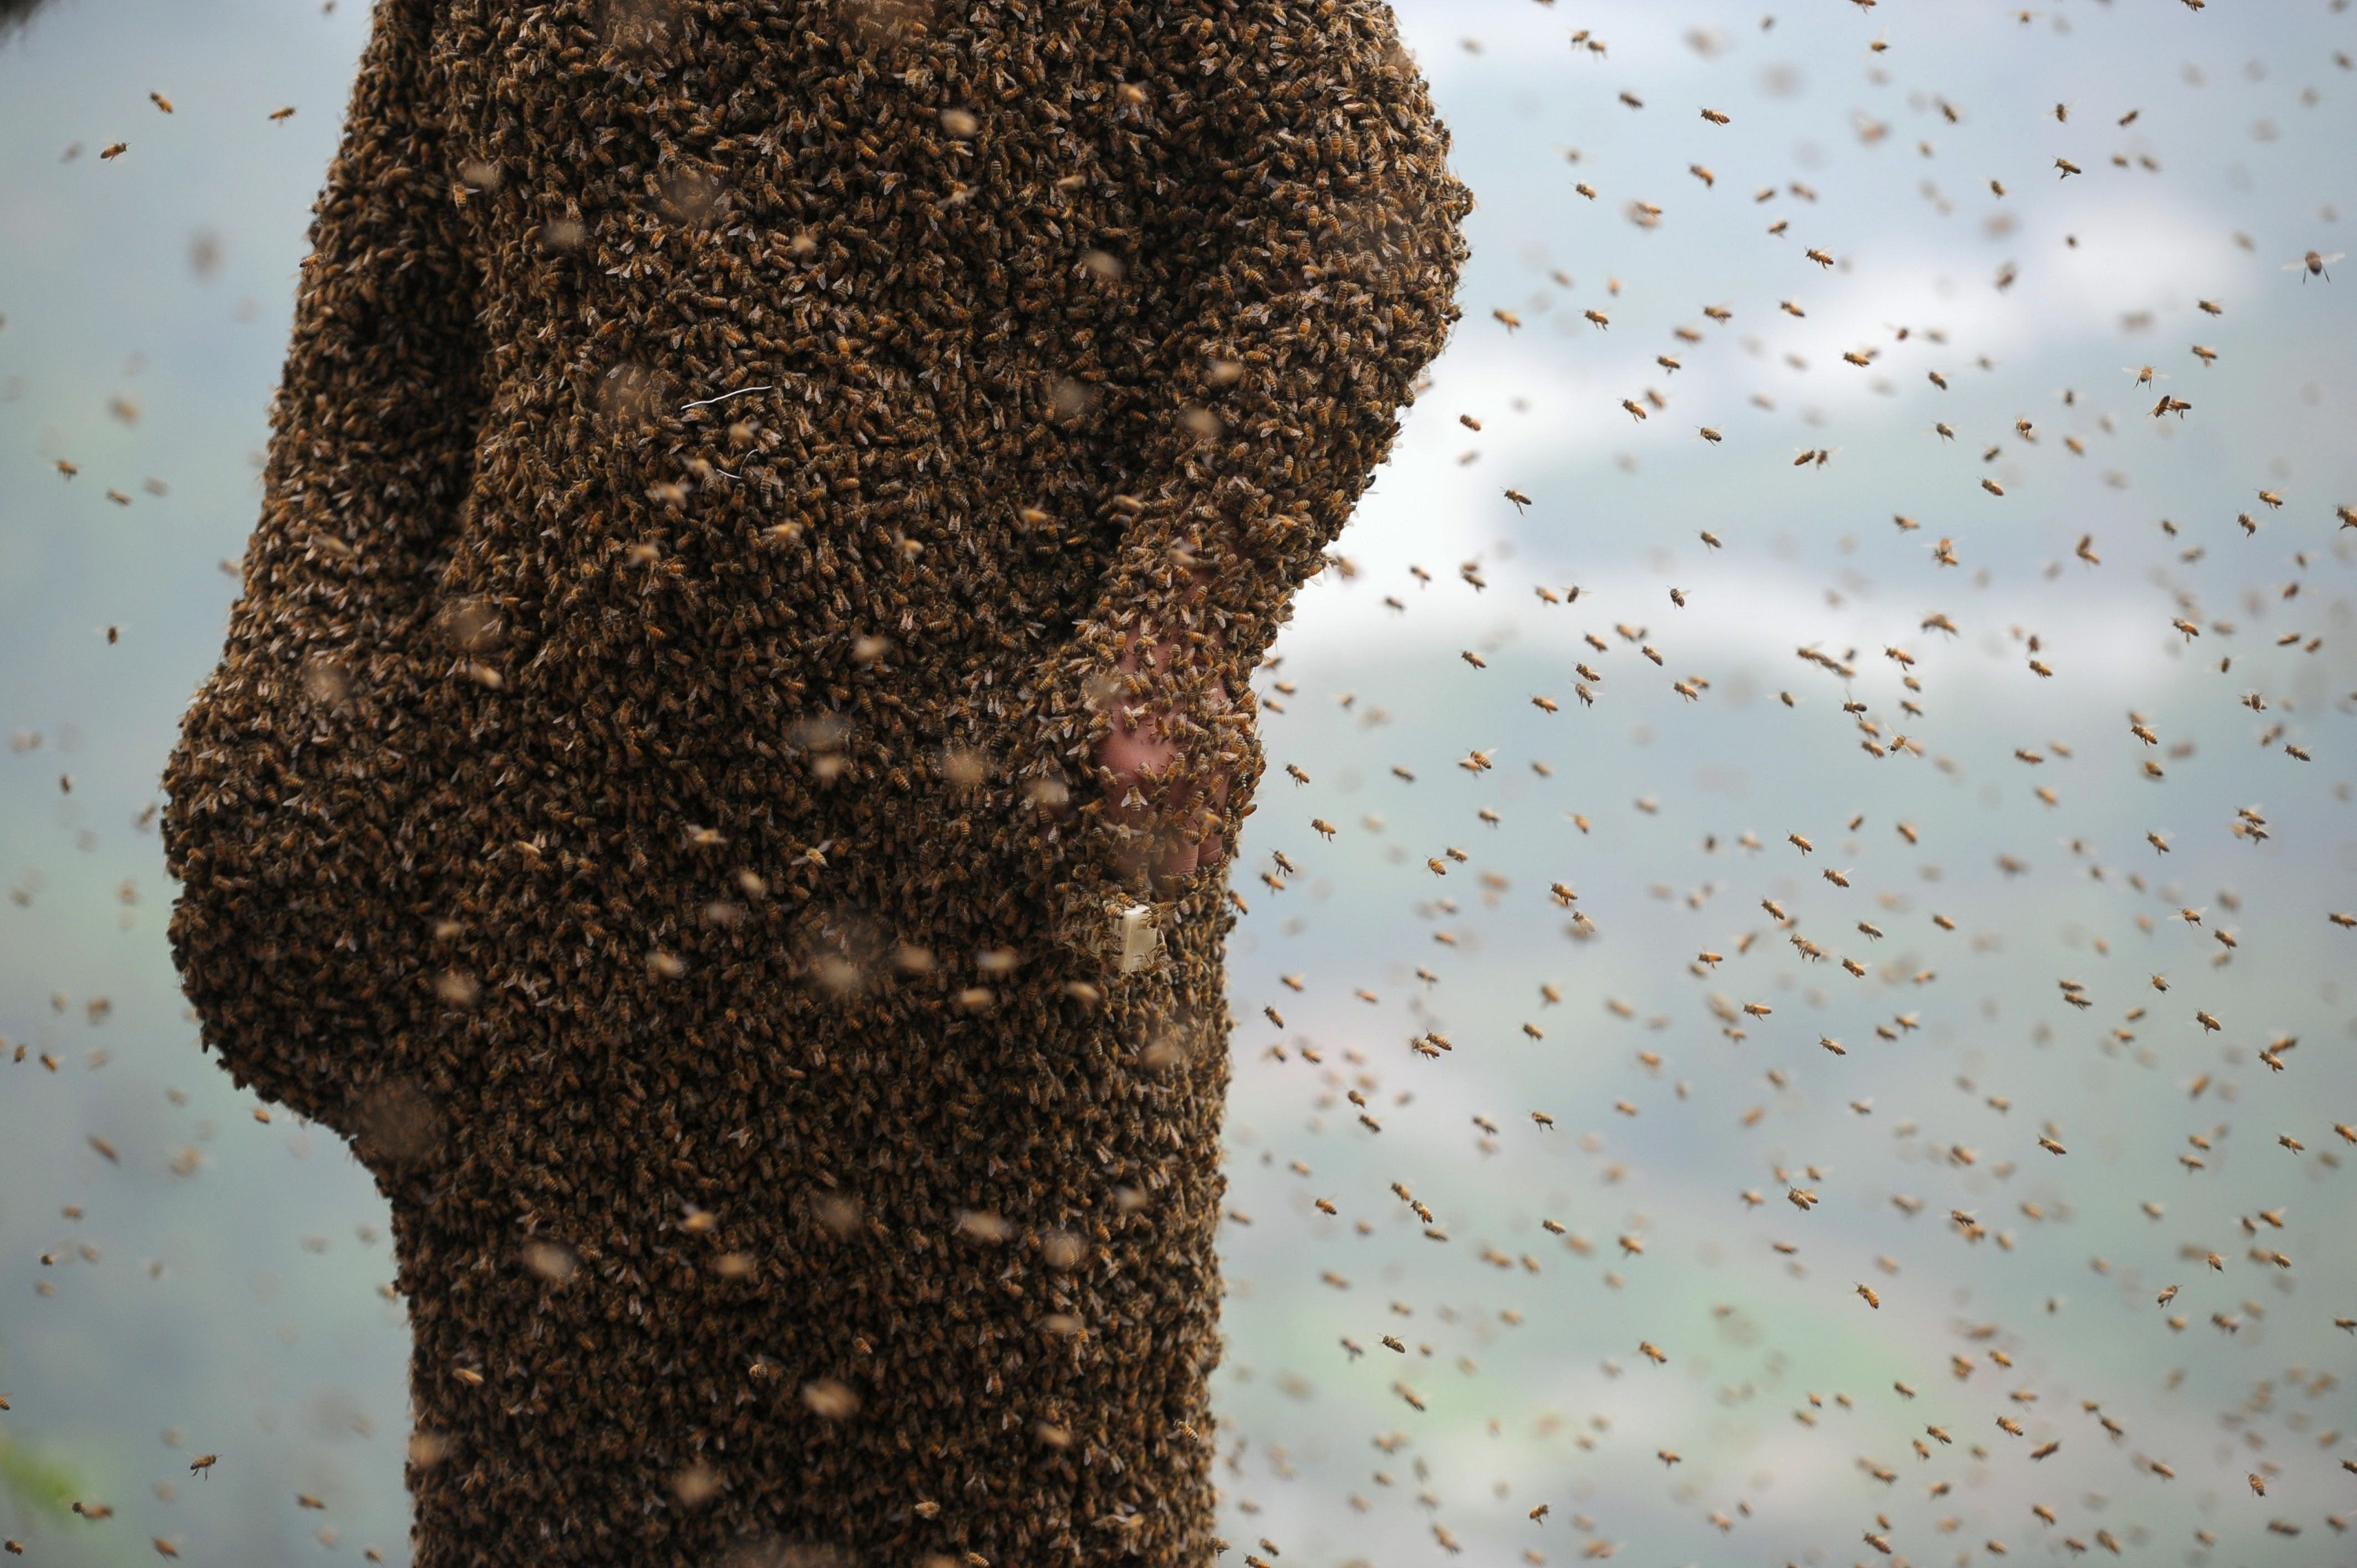 Beekeeper creates coat of living bees